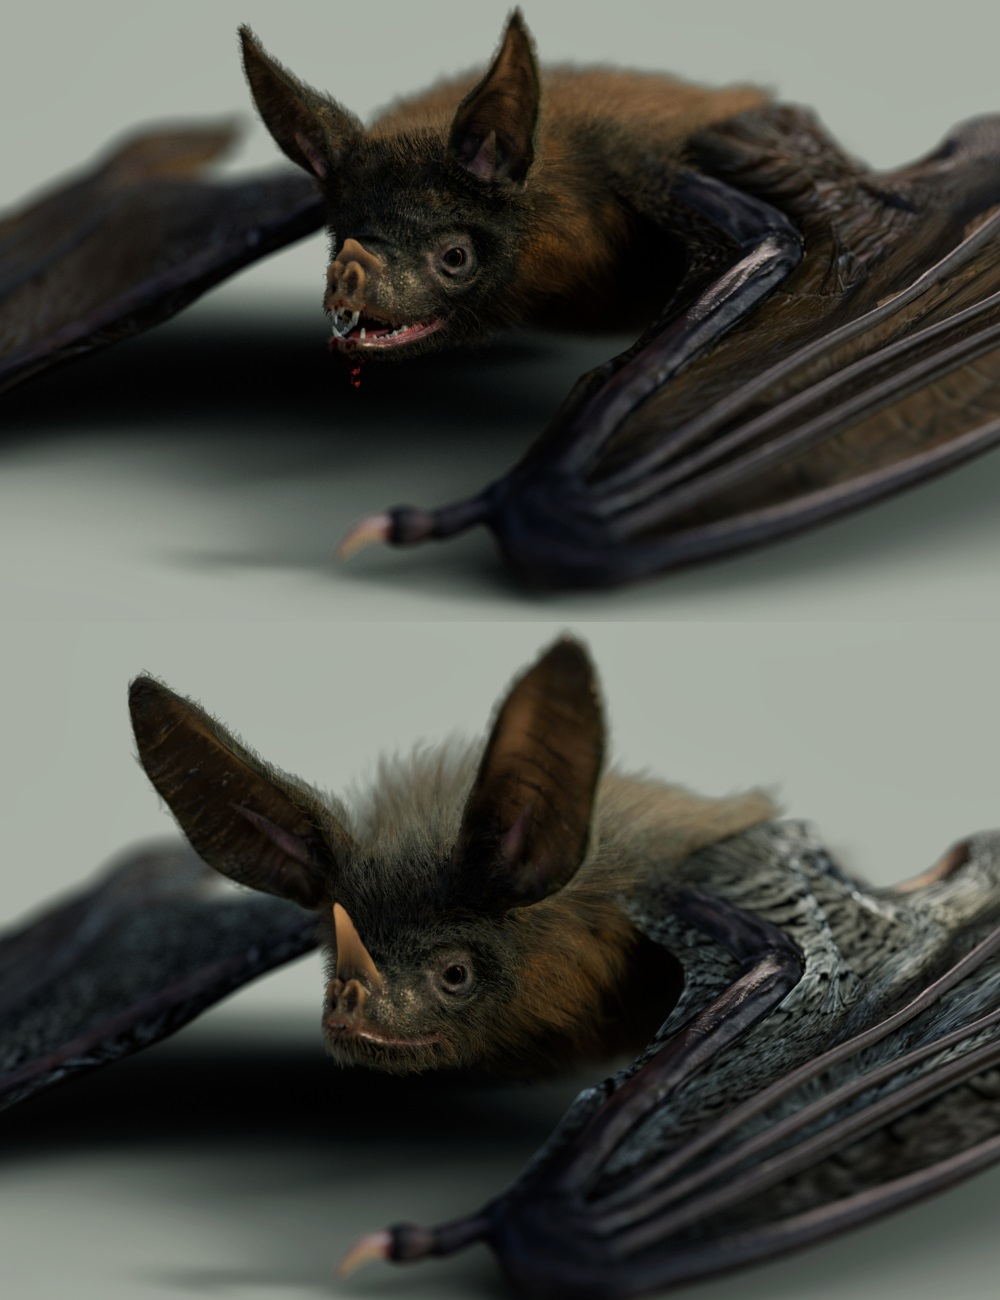 Vampire Bat by AM by: Alessandro_AM, 3D Models by Daz 3D